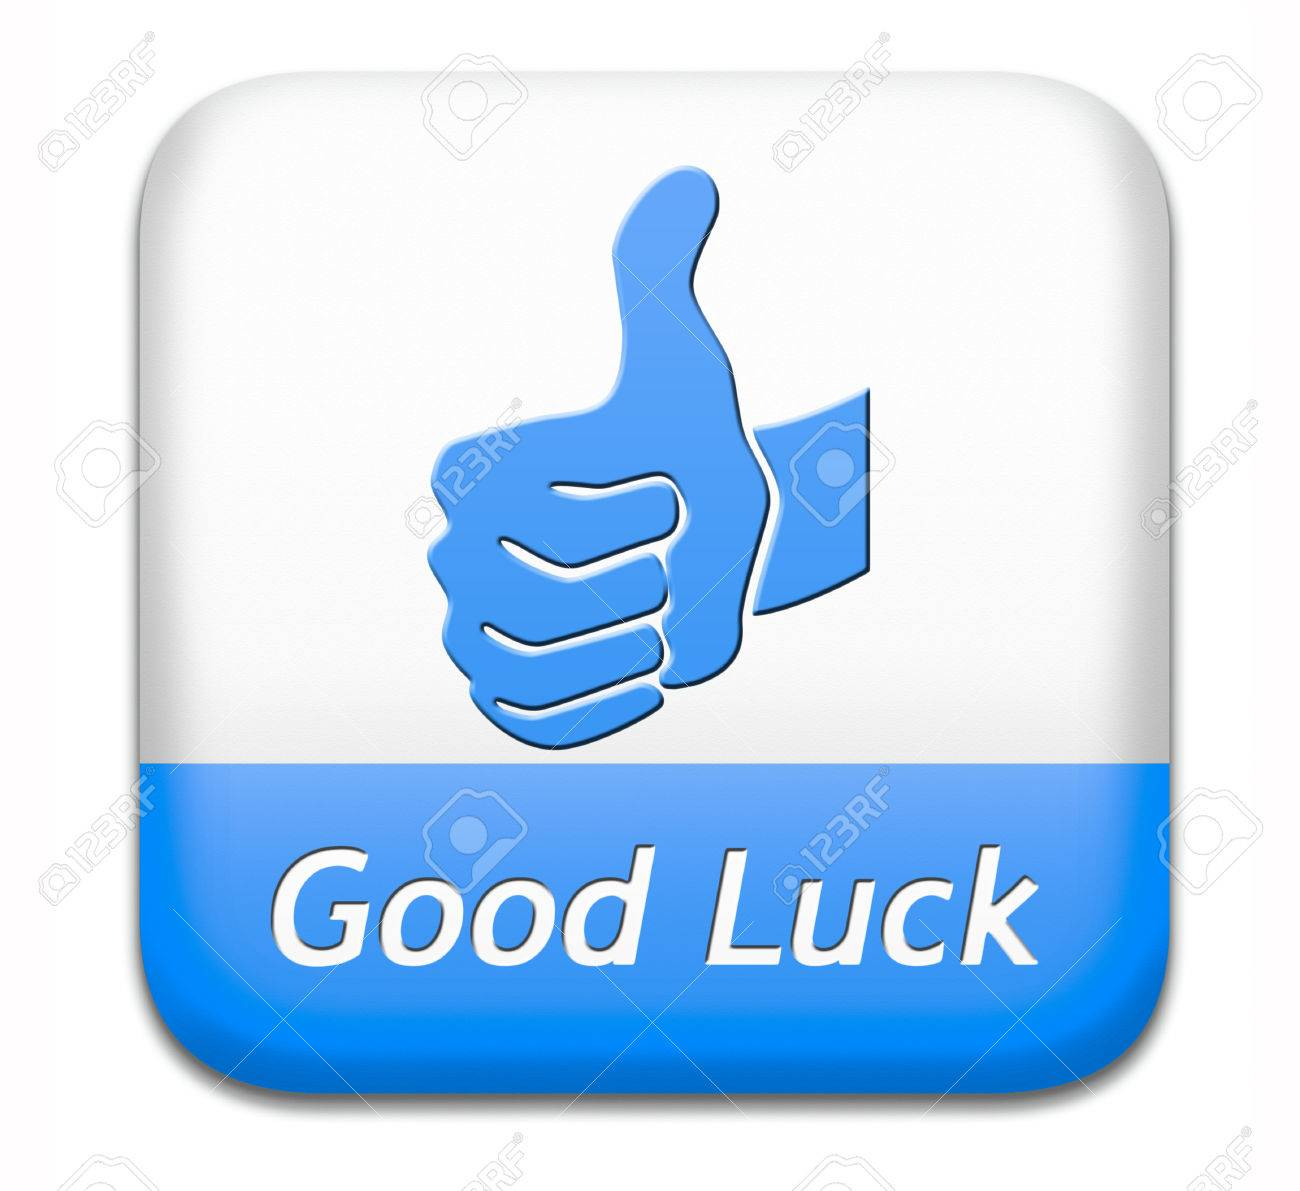 Good Luck Best Wishes Wish You The Best Of Luck And Fortune Stock